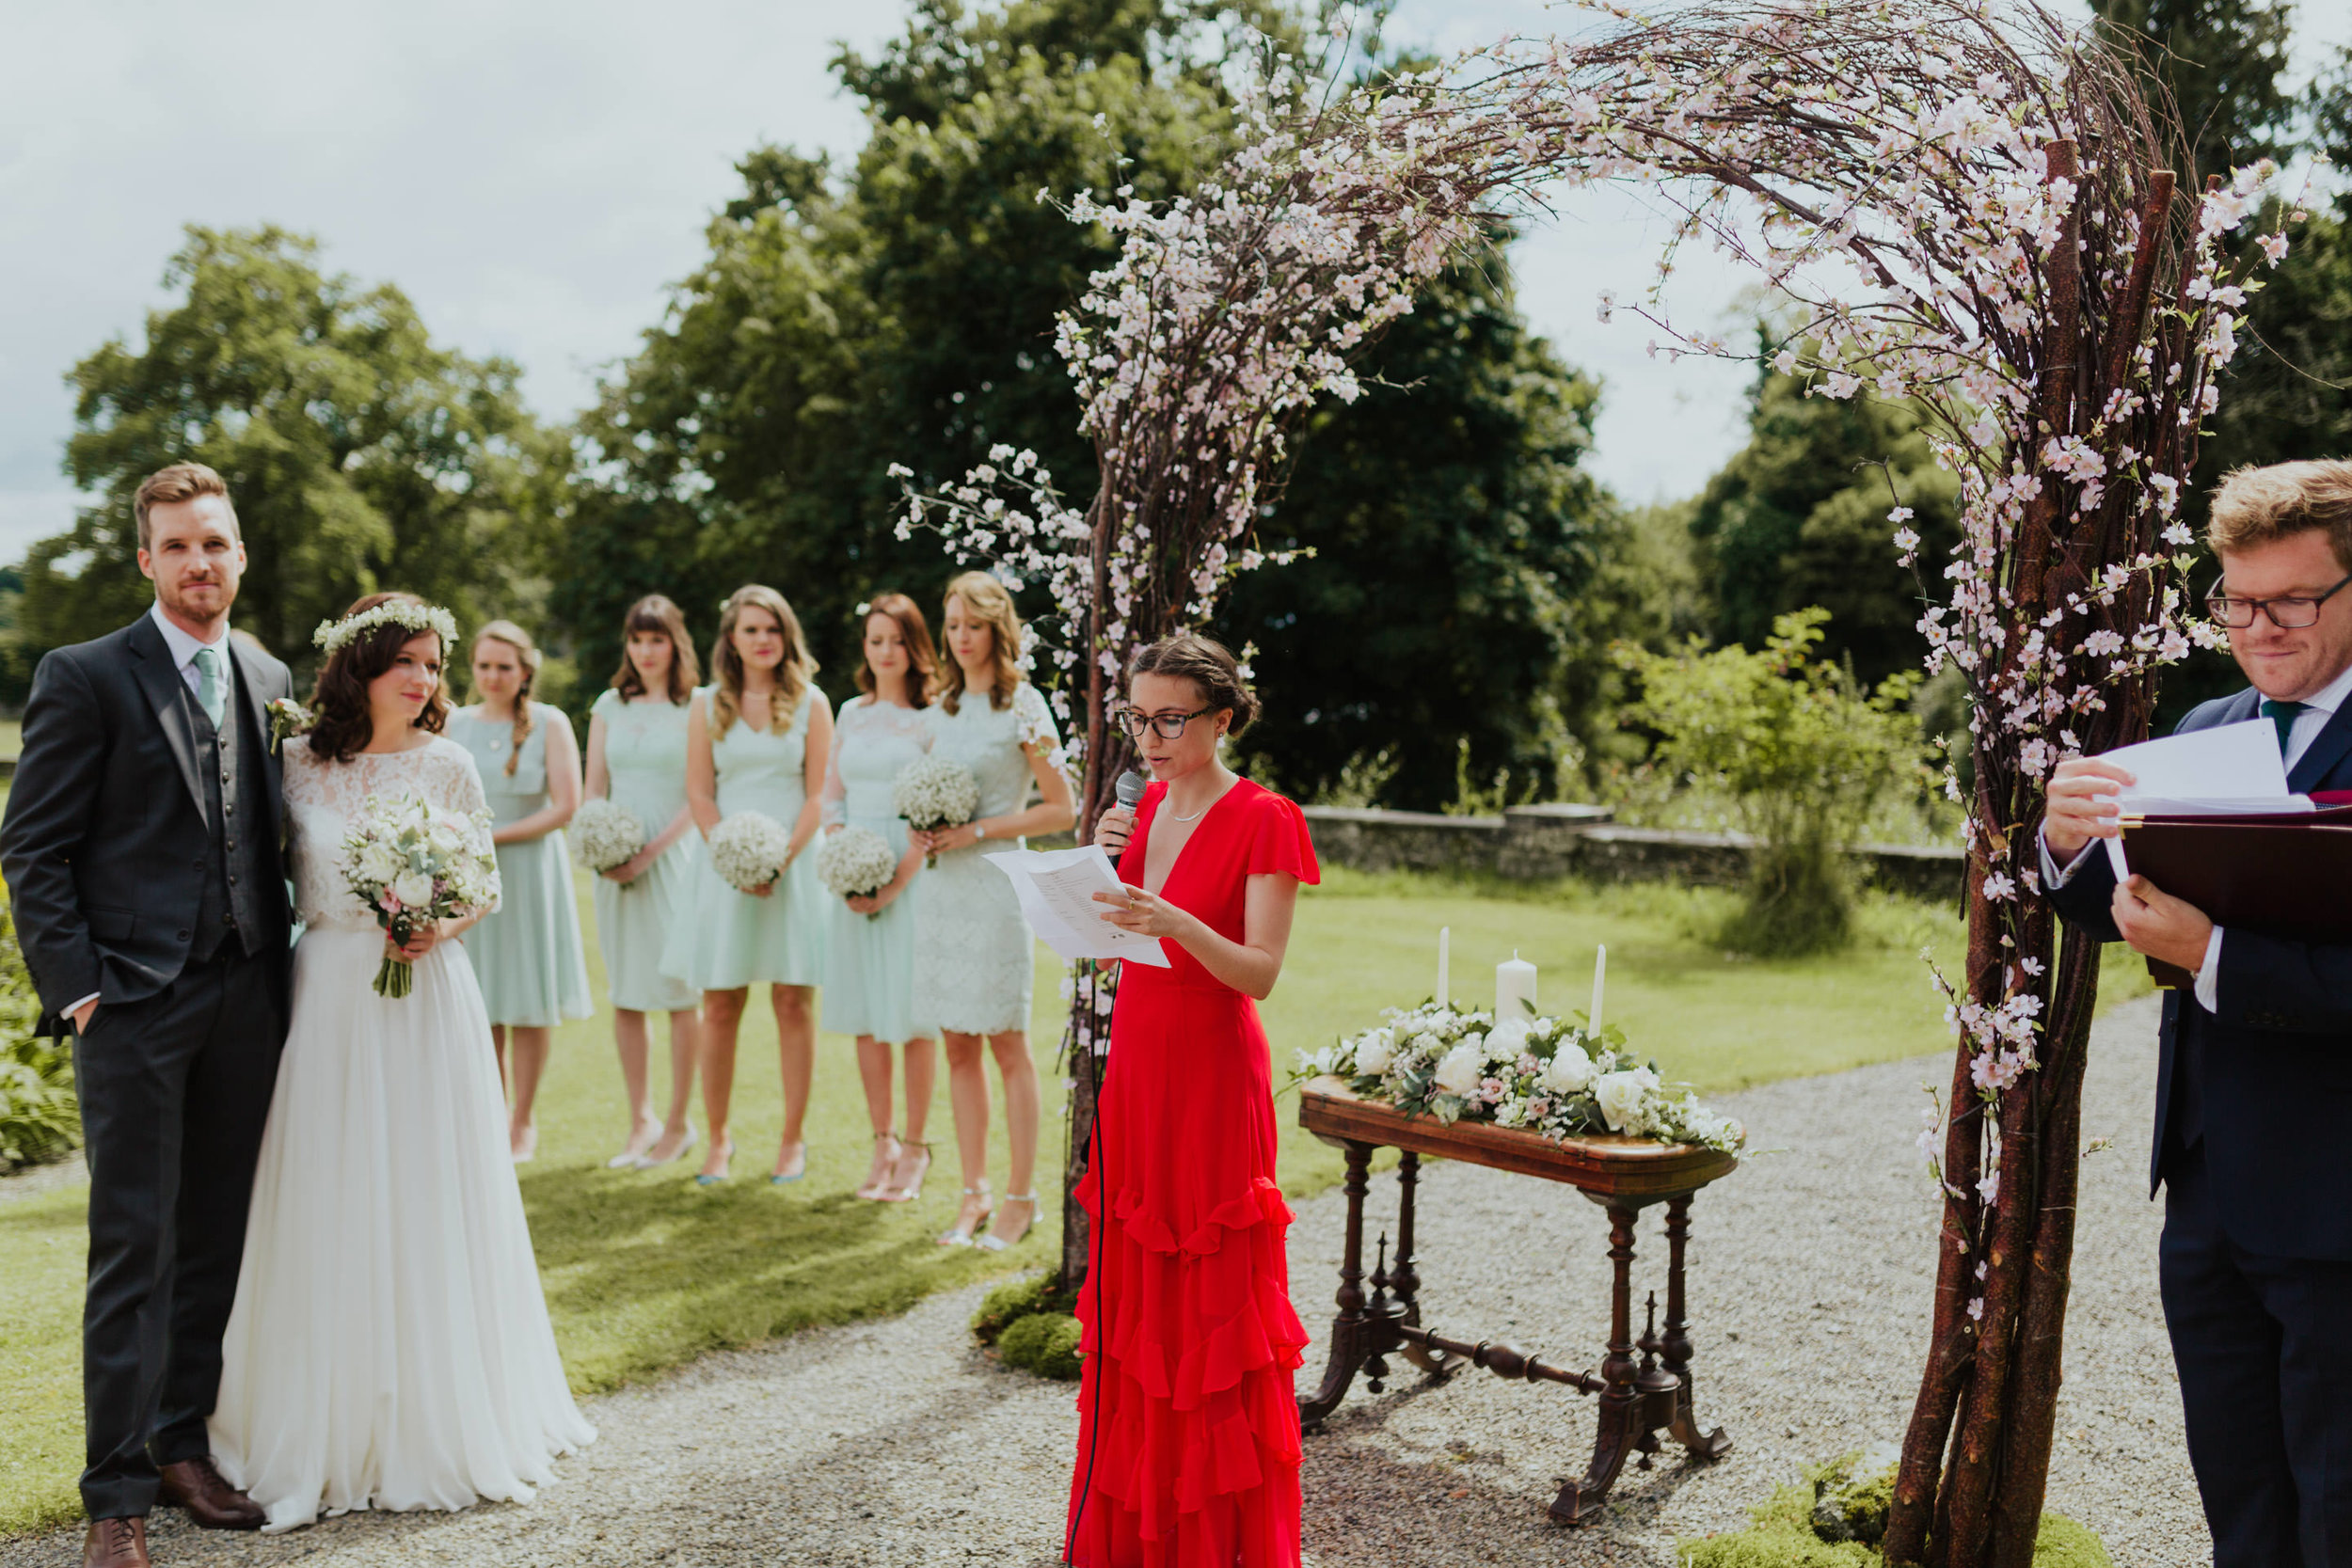 a+s_temple_house_sligo_wedding_livia_figueiredo_540.jpg